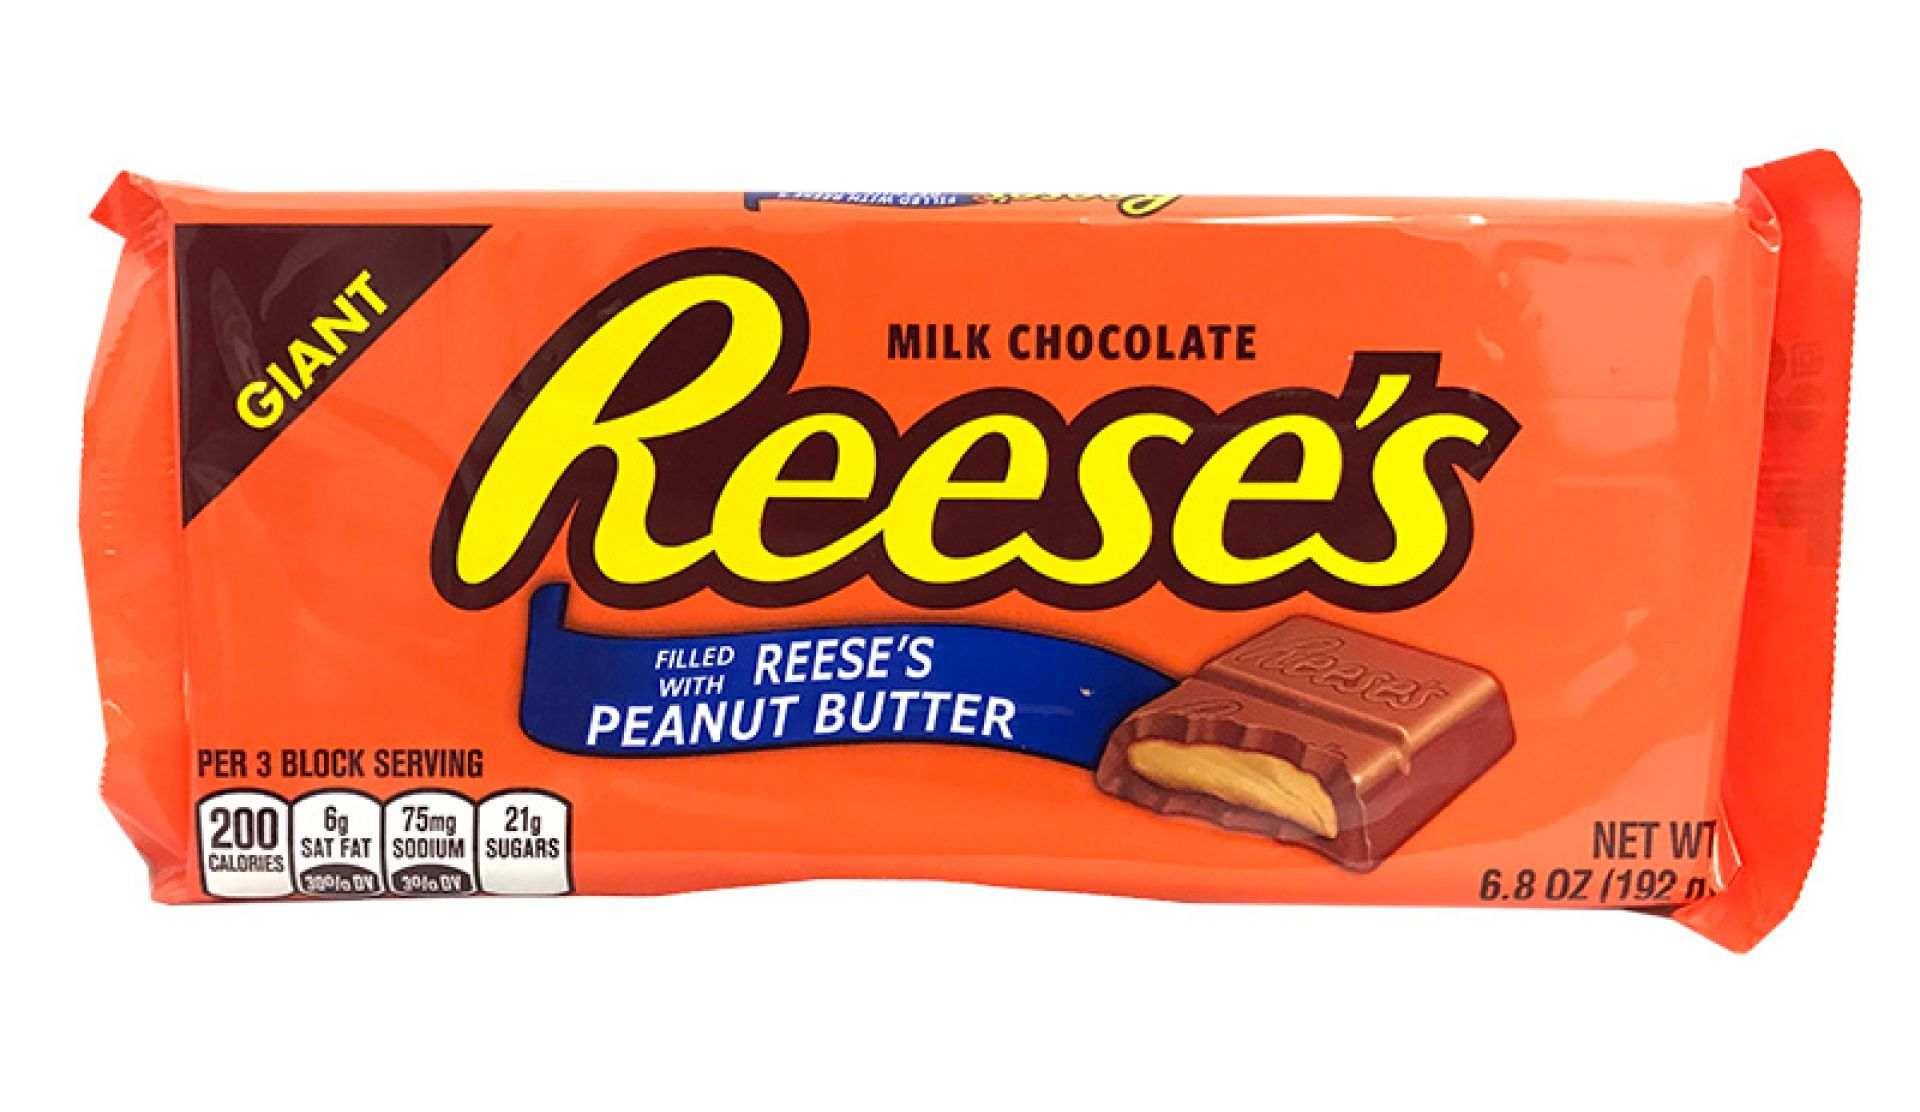 Reese's Giant Milk Chocolate Peanut Butter Bar